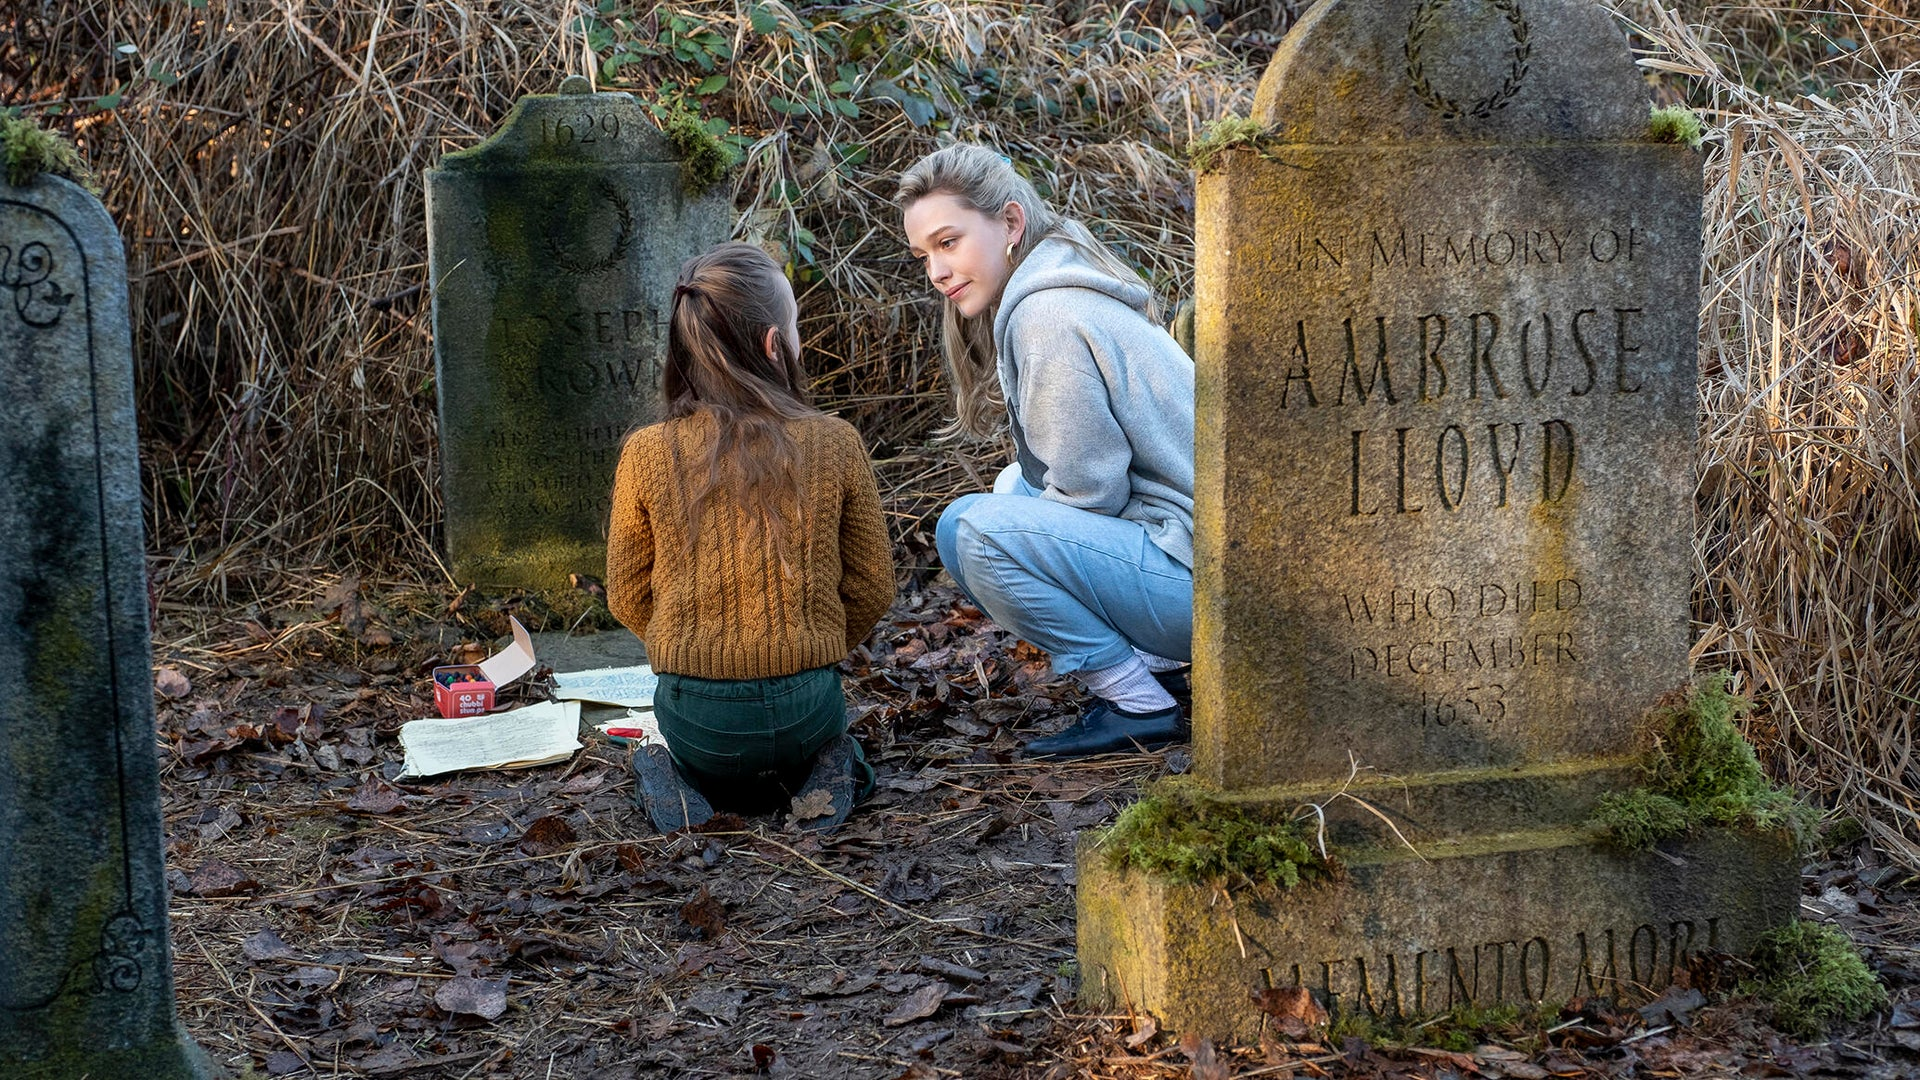 Amelie Smith and Victoria Pedretti, The Haunting of Bly Manor